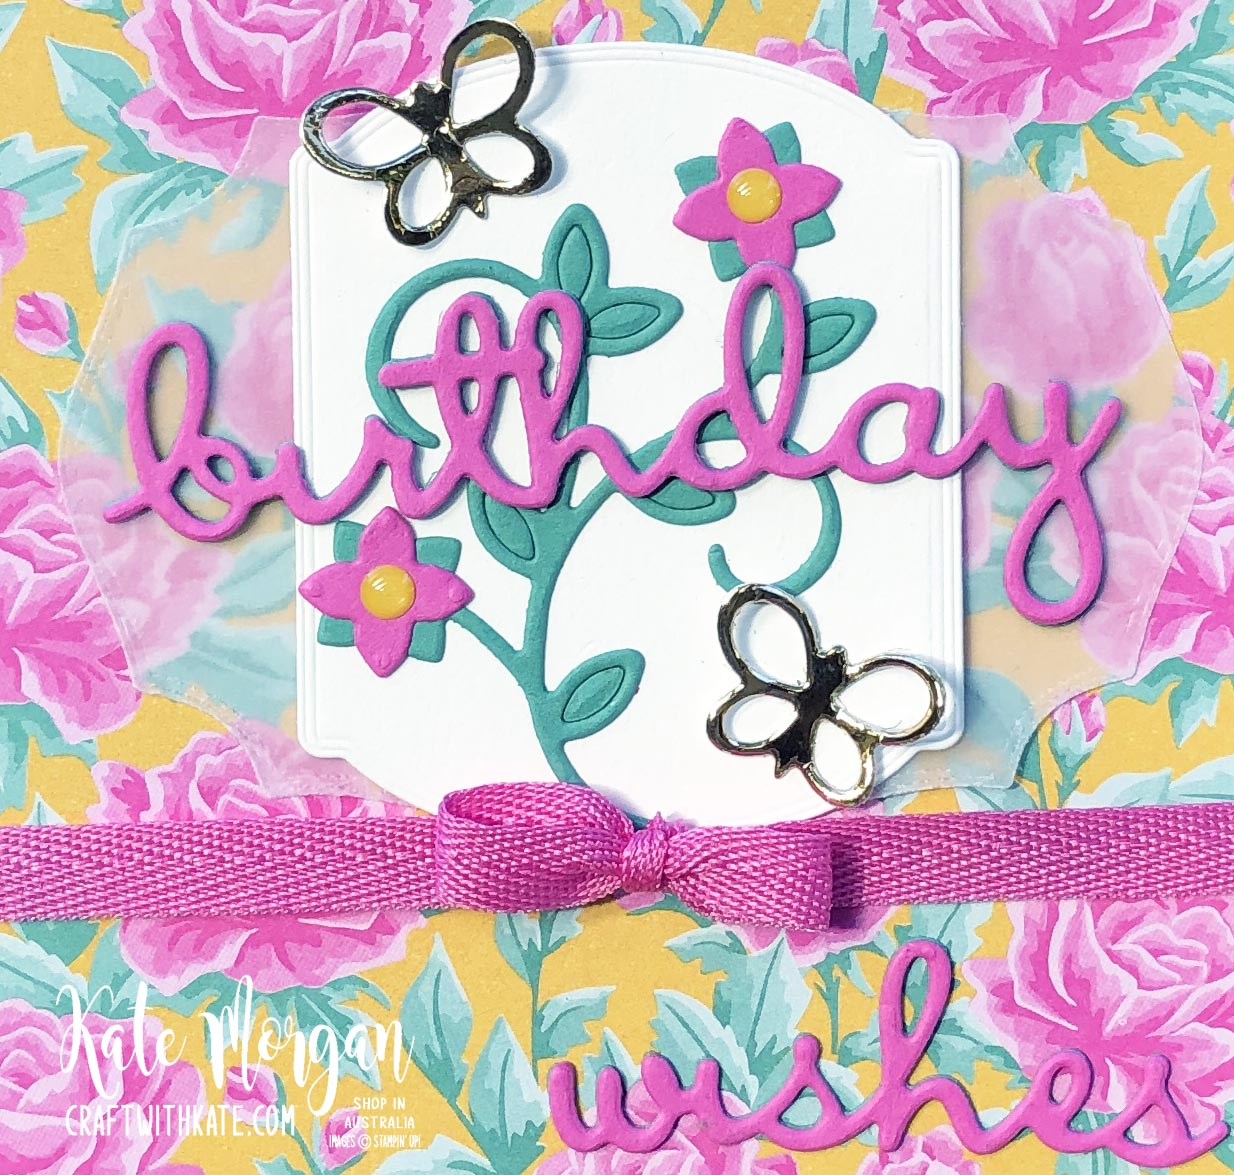 Magenta Madness Feminine Handmade card by Kate Morgan, Stampin Up Australia 2020 closeup